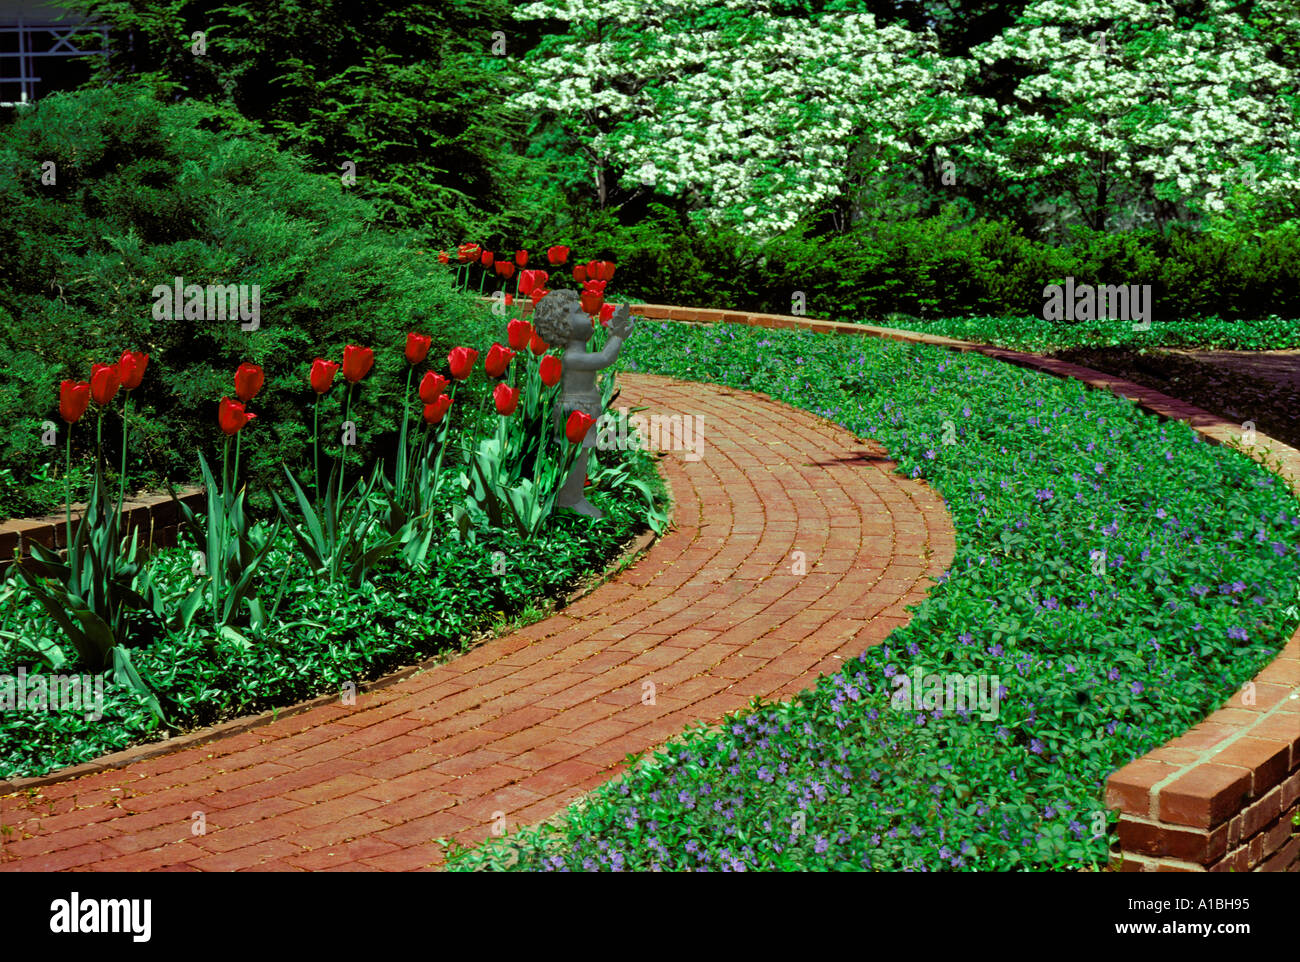 garden with curving brick path or walkway through vinca, Natural flower